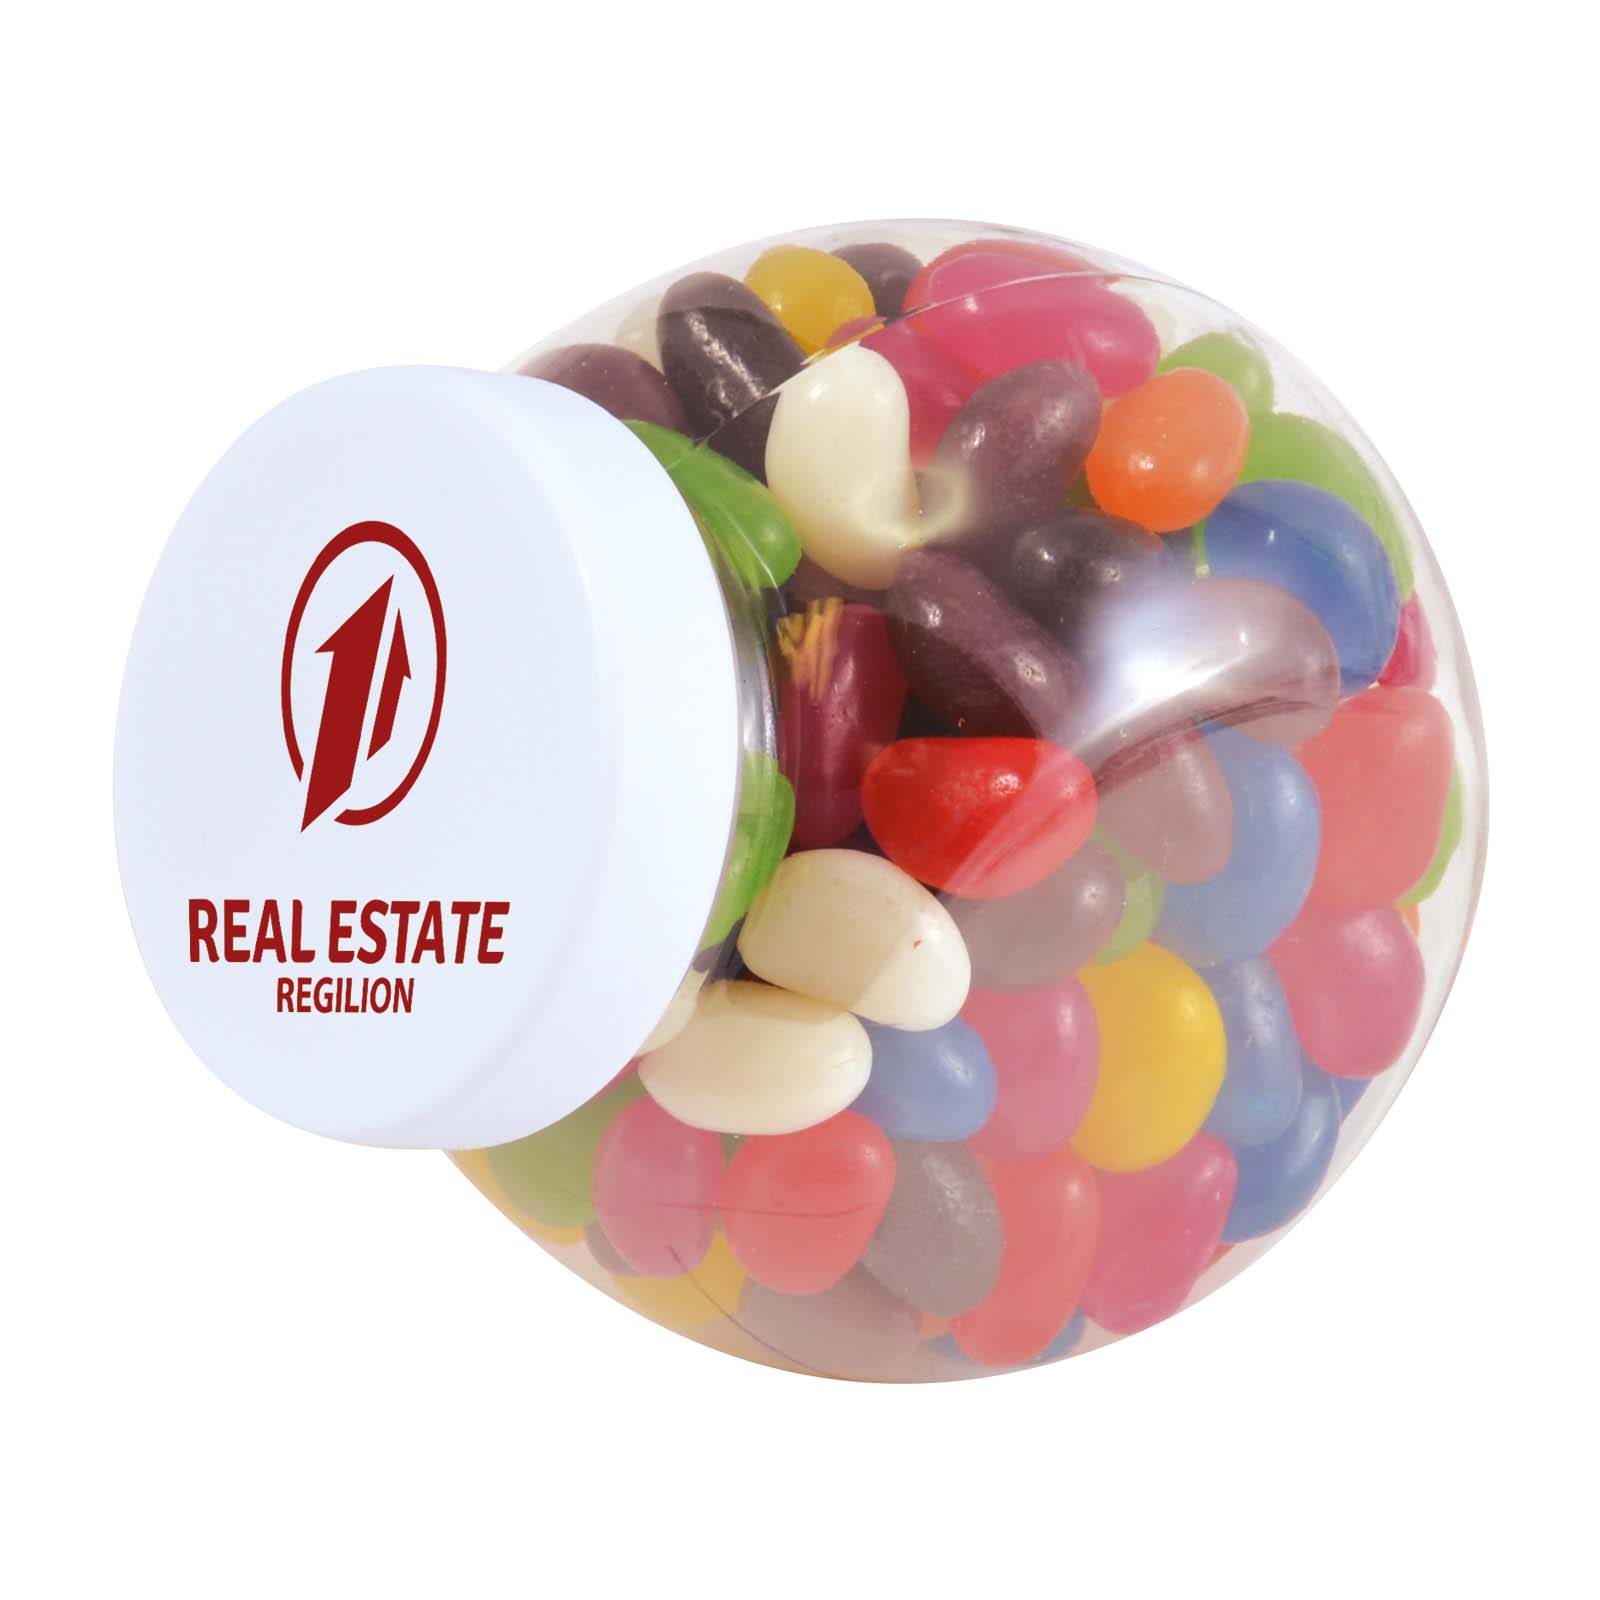 Assorted Colour Mini Jelly Beans in Container - Includes a 1 colour printed logo